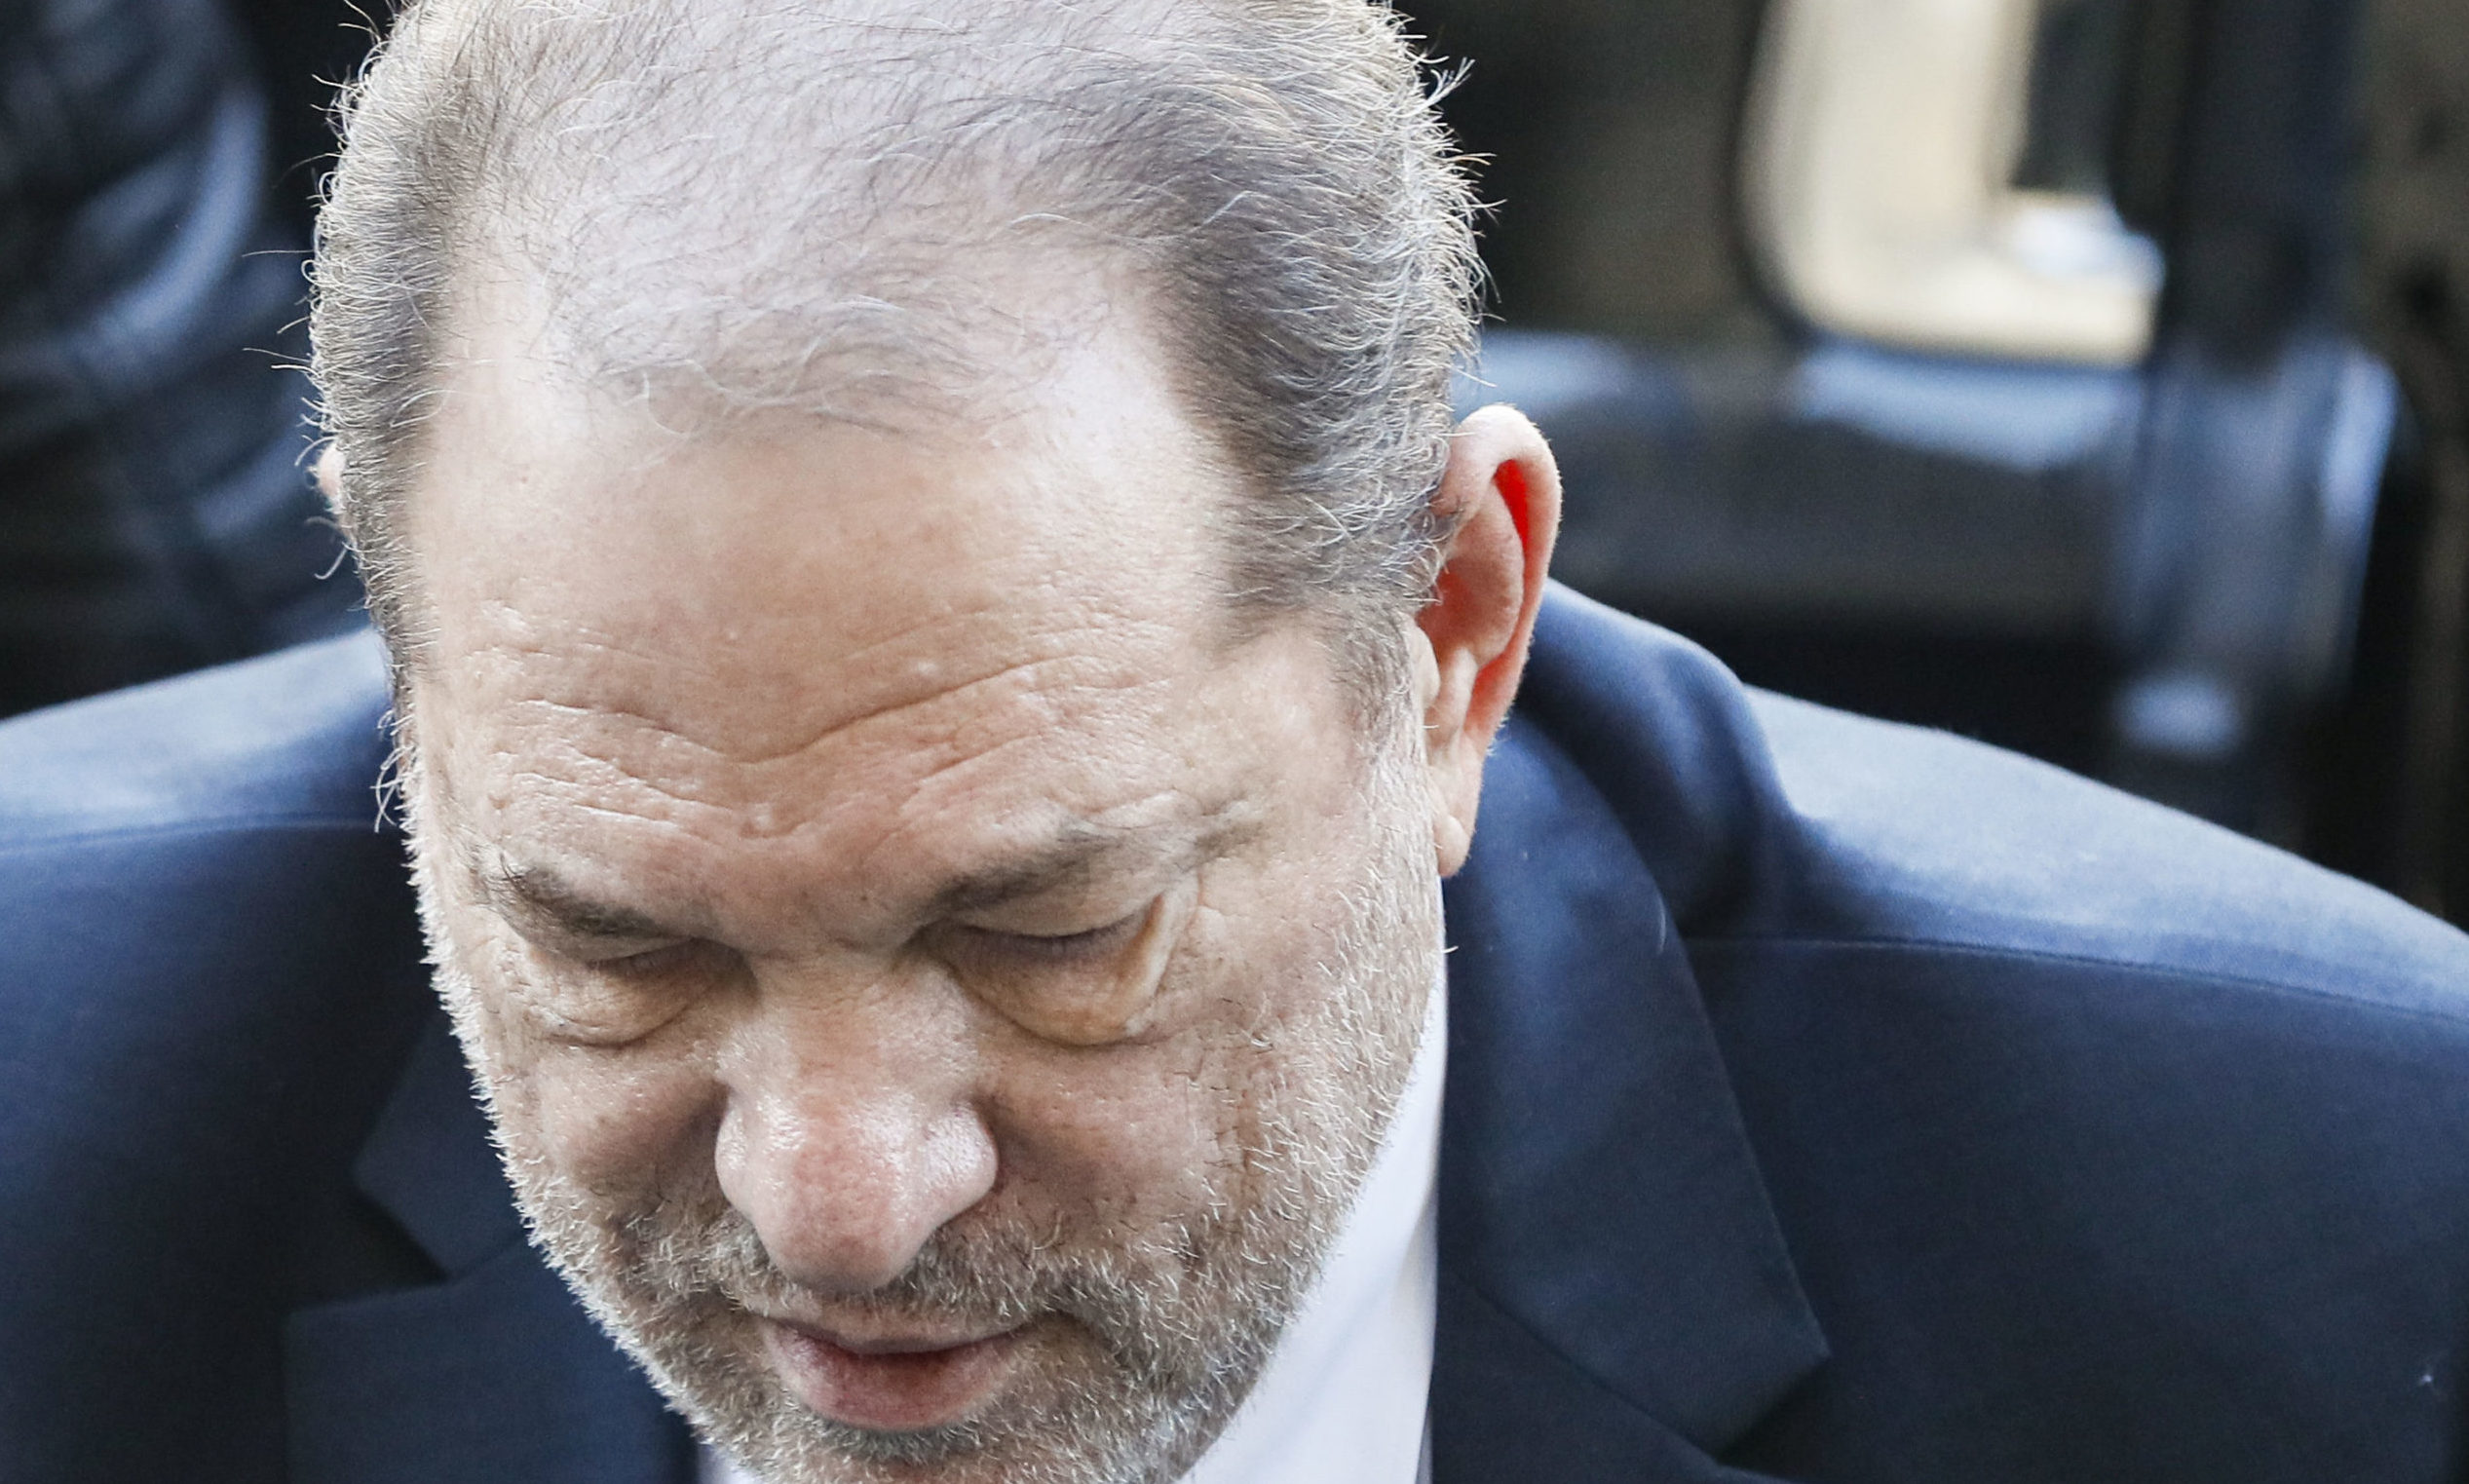 Harvey Weinstein arrives at a Manhattan courthouse for his rape trial on Monday, Feb. 24, 2020.